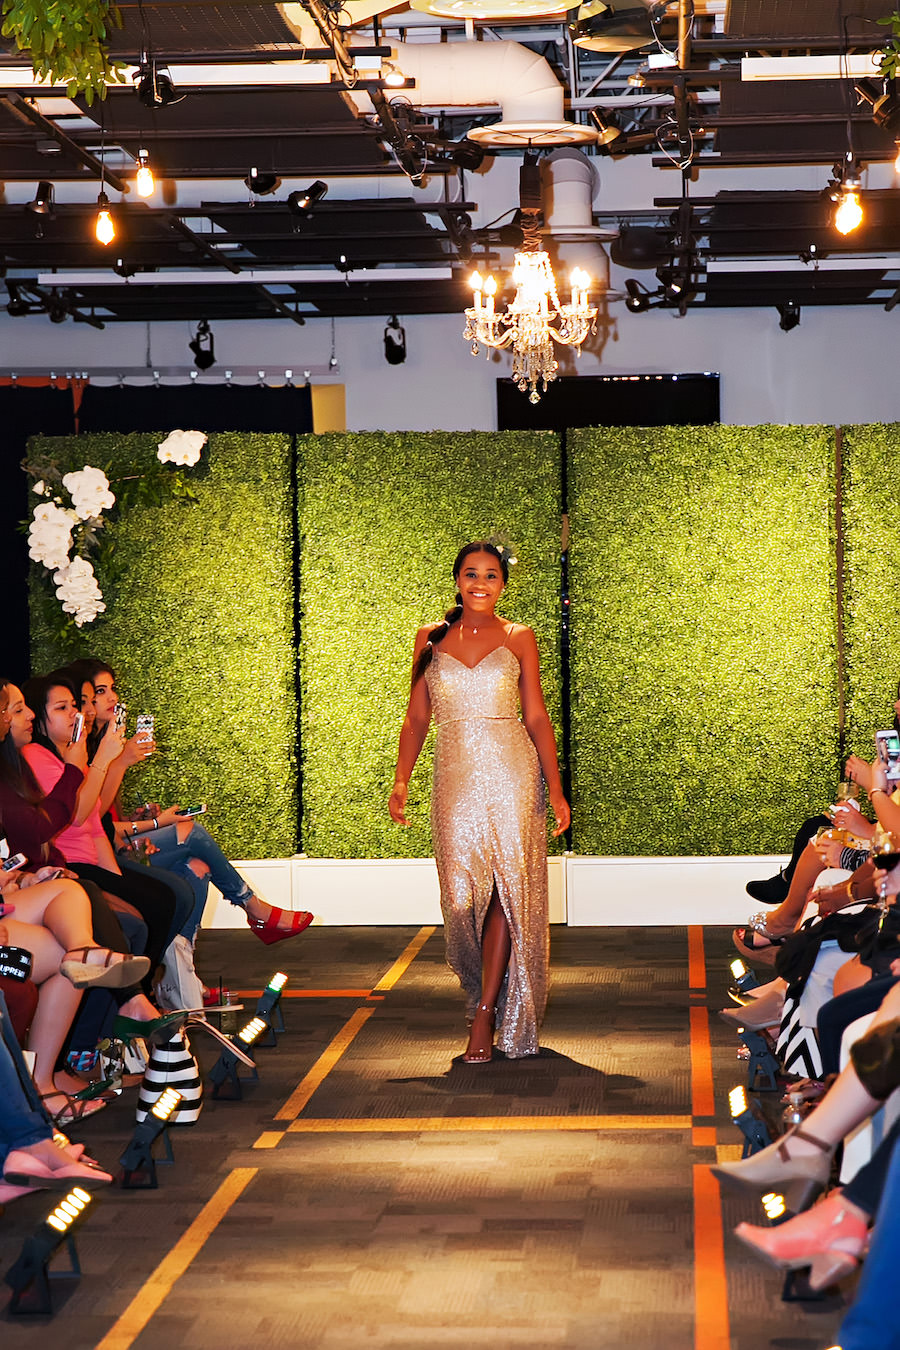 Sequined Gold Bridesmaid Dress | Marry Me Tampa Bay Wedding Week Bridal Fashion Runway Show | Tampa Bay Wedding Photographer Limelight Photography | Wedding Planner Glitz Events | Hair and Makeup Artist Michele Renee The Studio